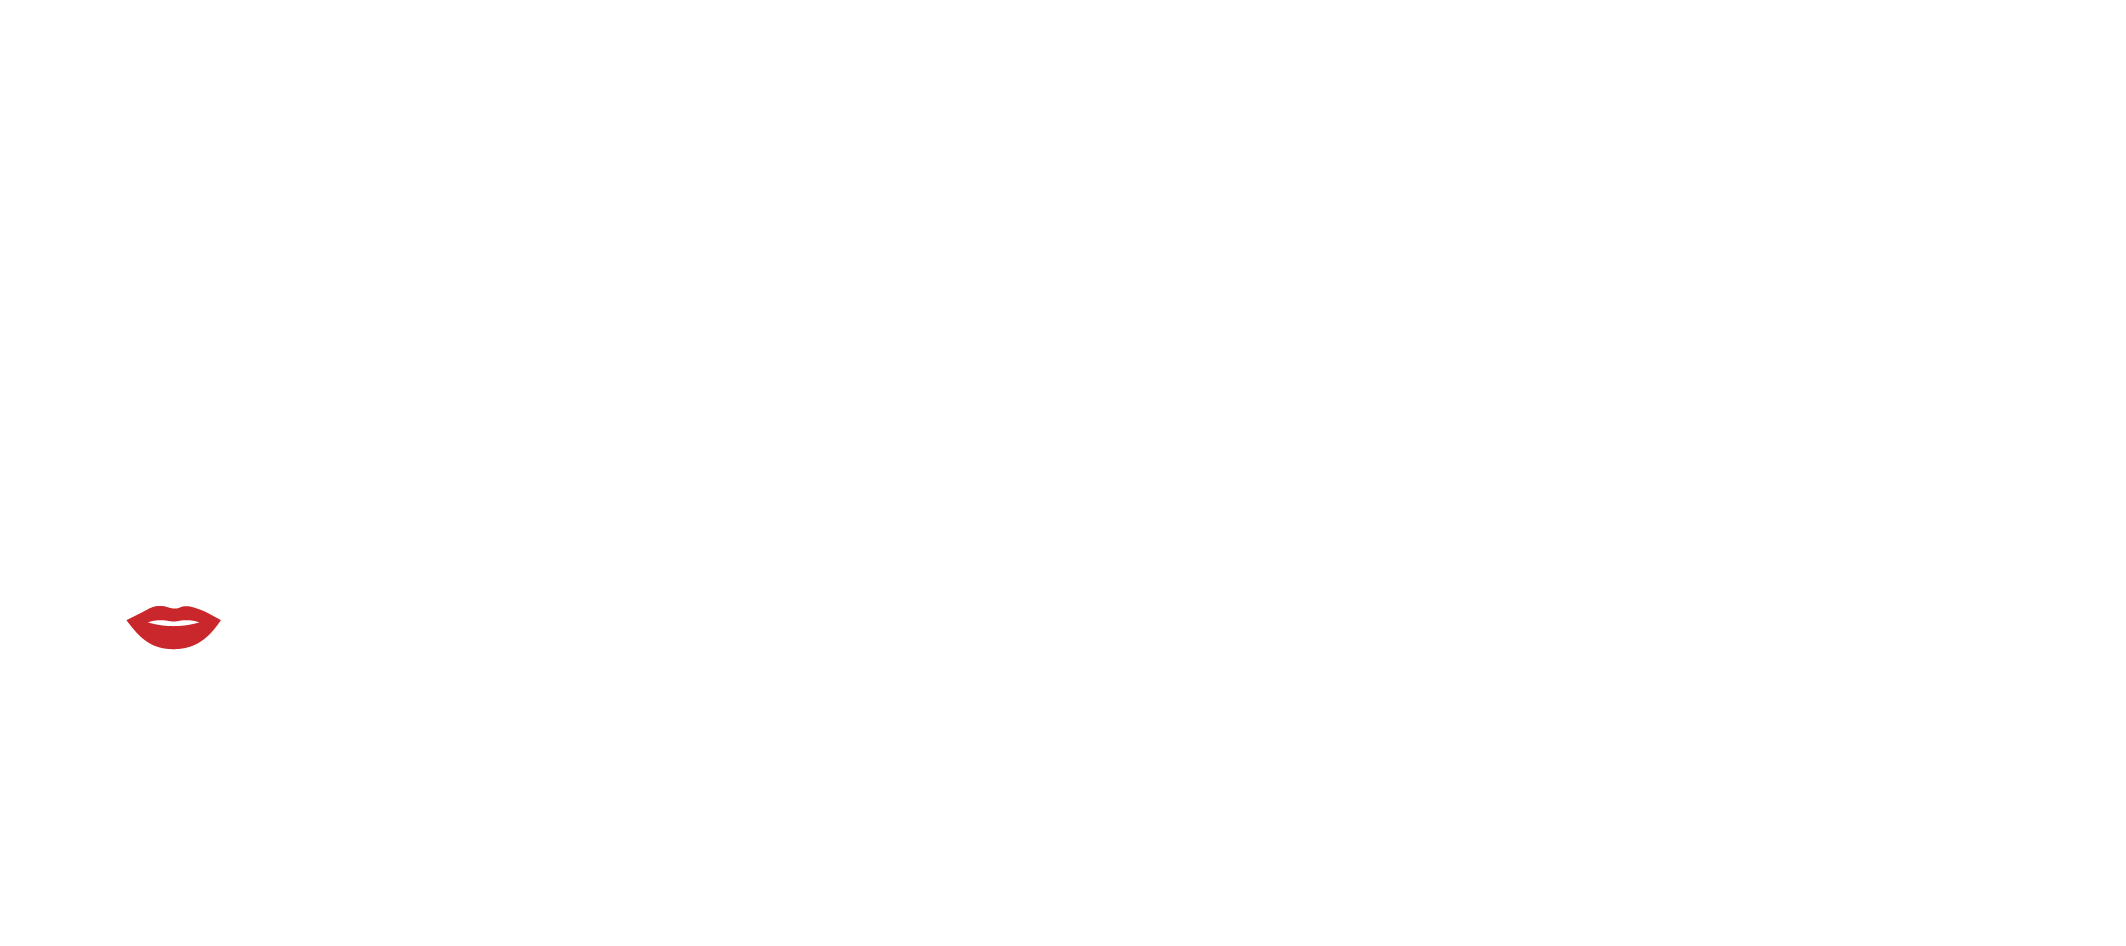 https://www.artigianidellabirra.it/storage/2020/10/logo_mob_.png